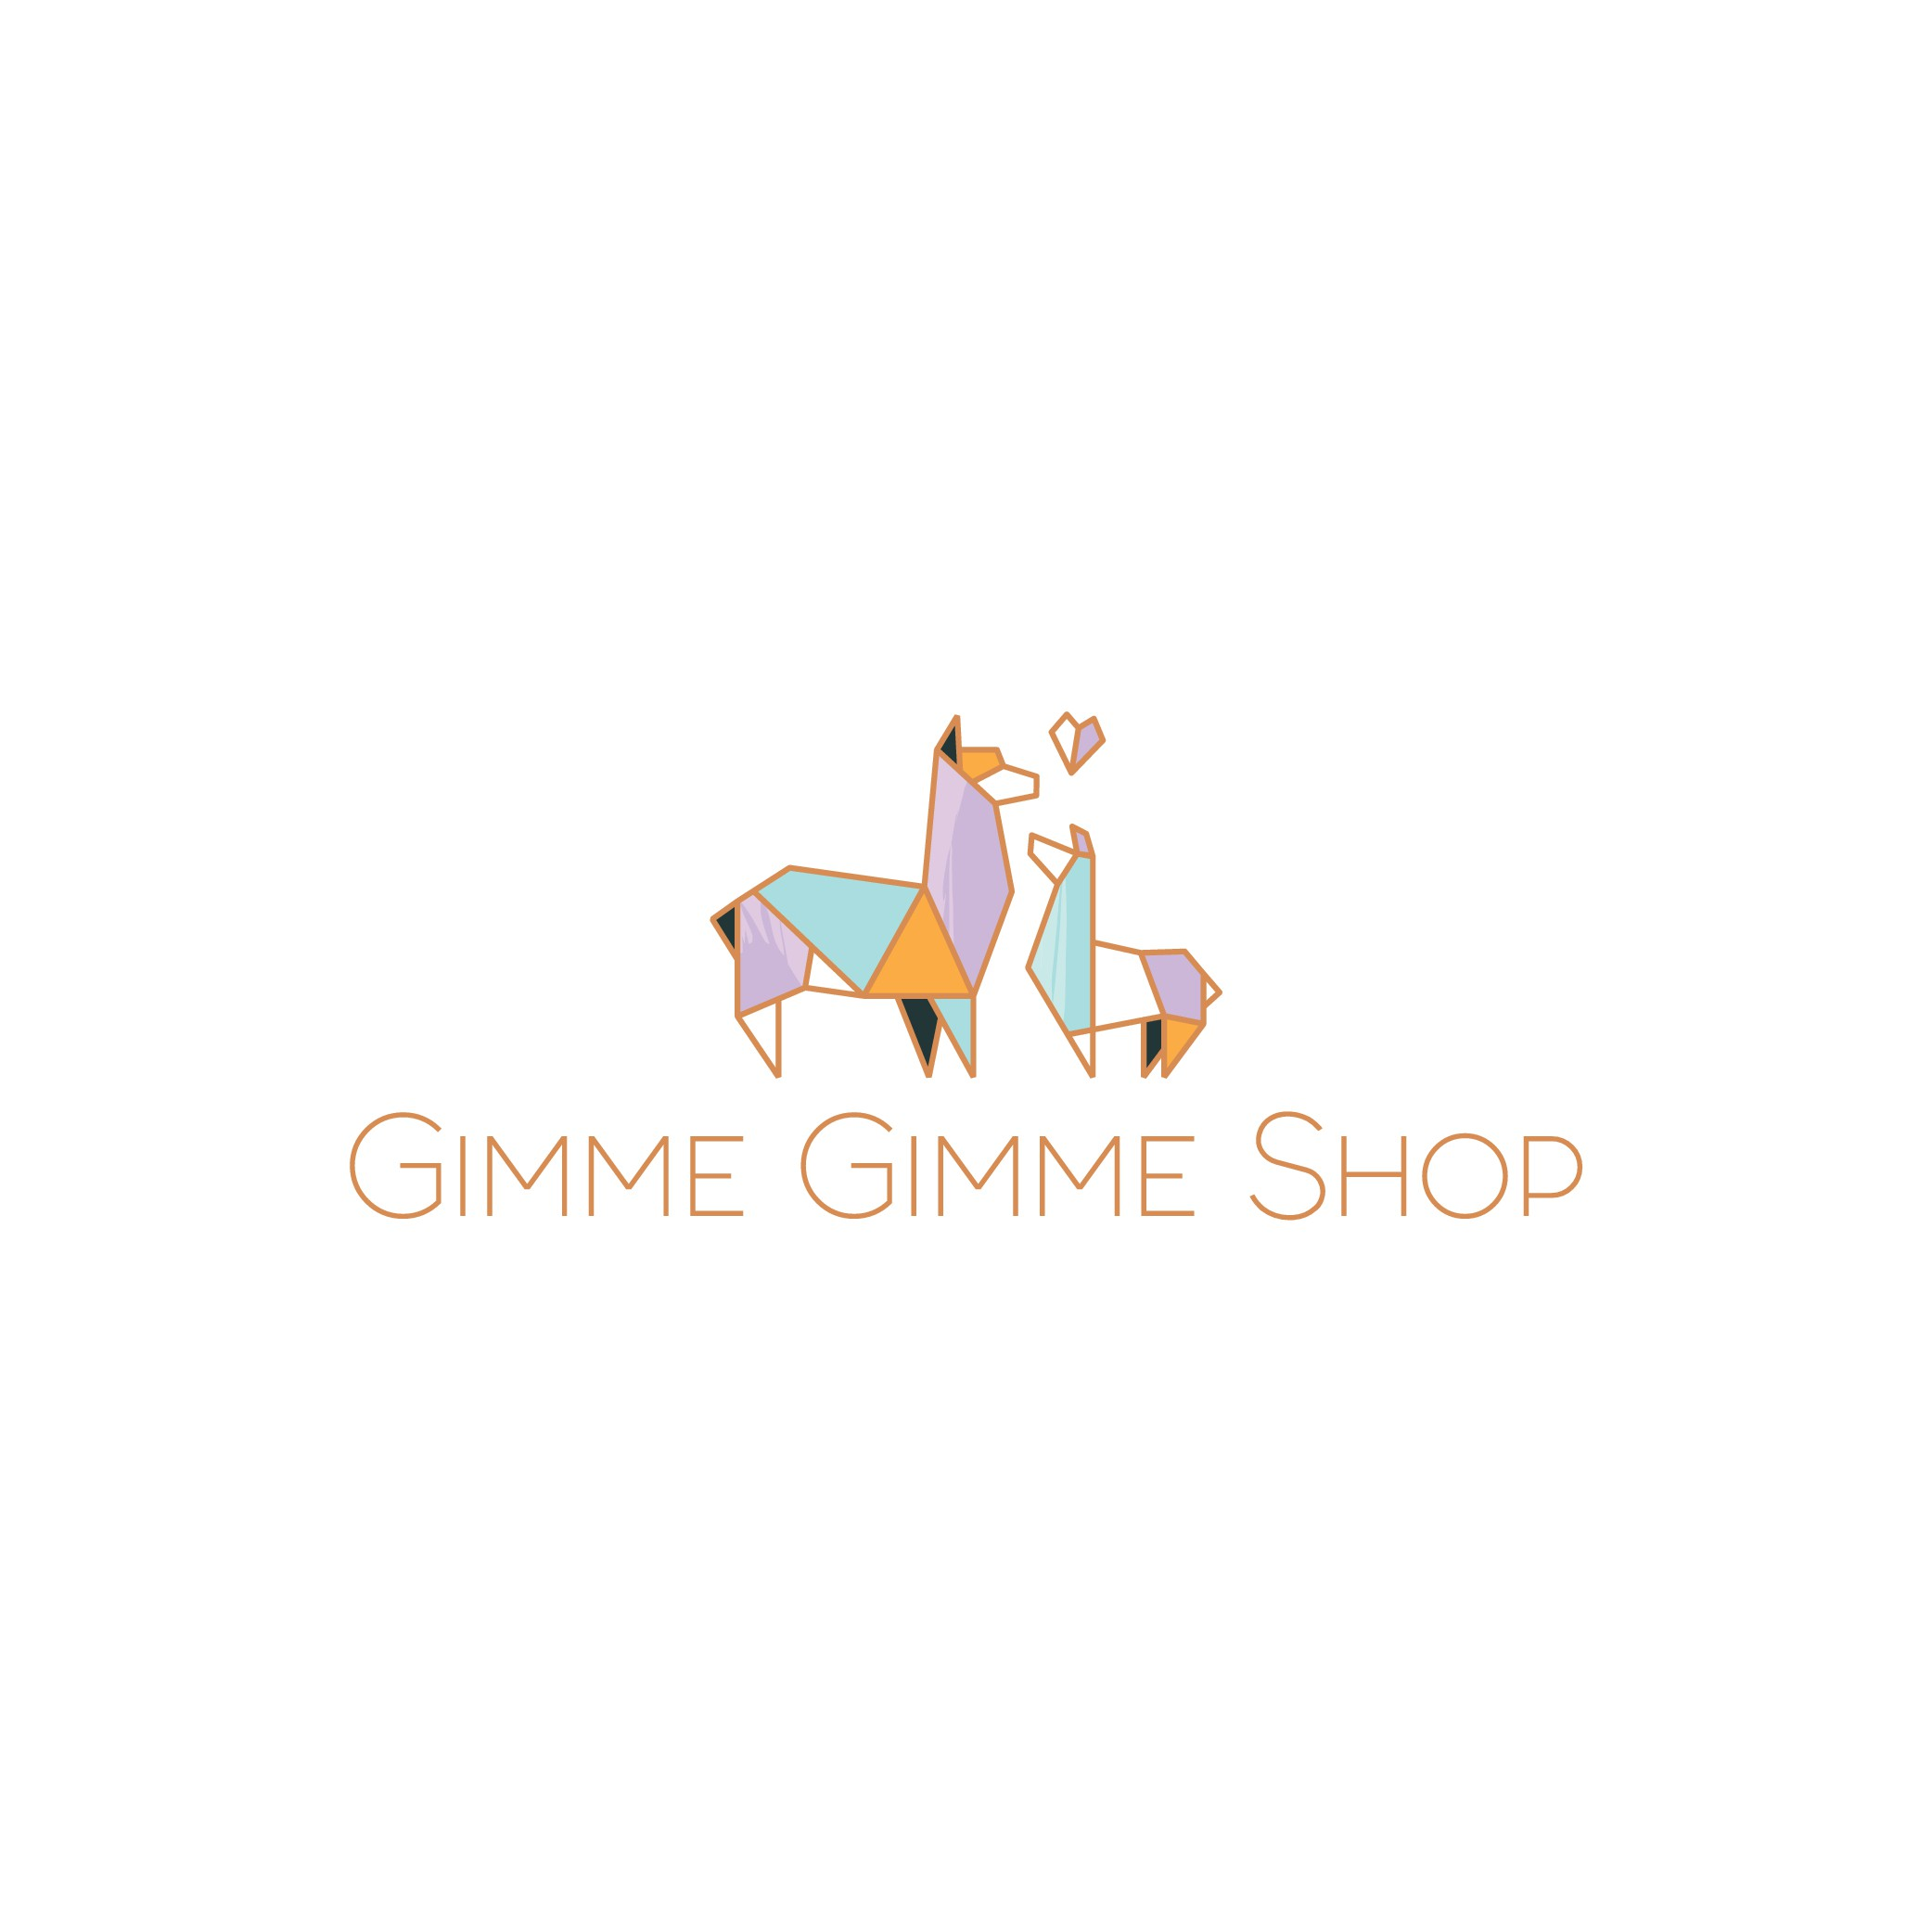 Have fun with creating a cool, clean and trendy childrens clothing company logo!